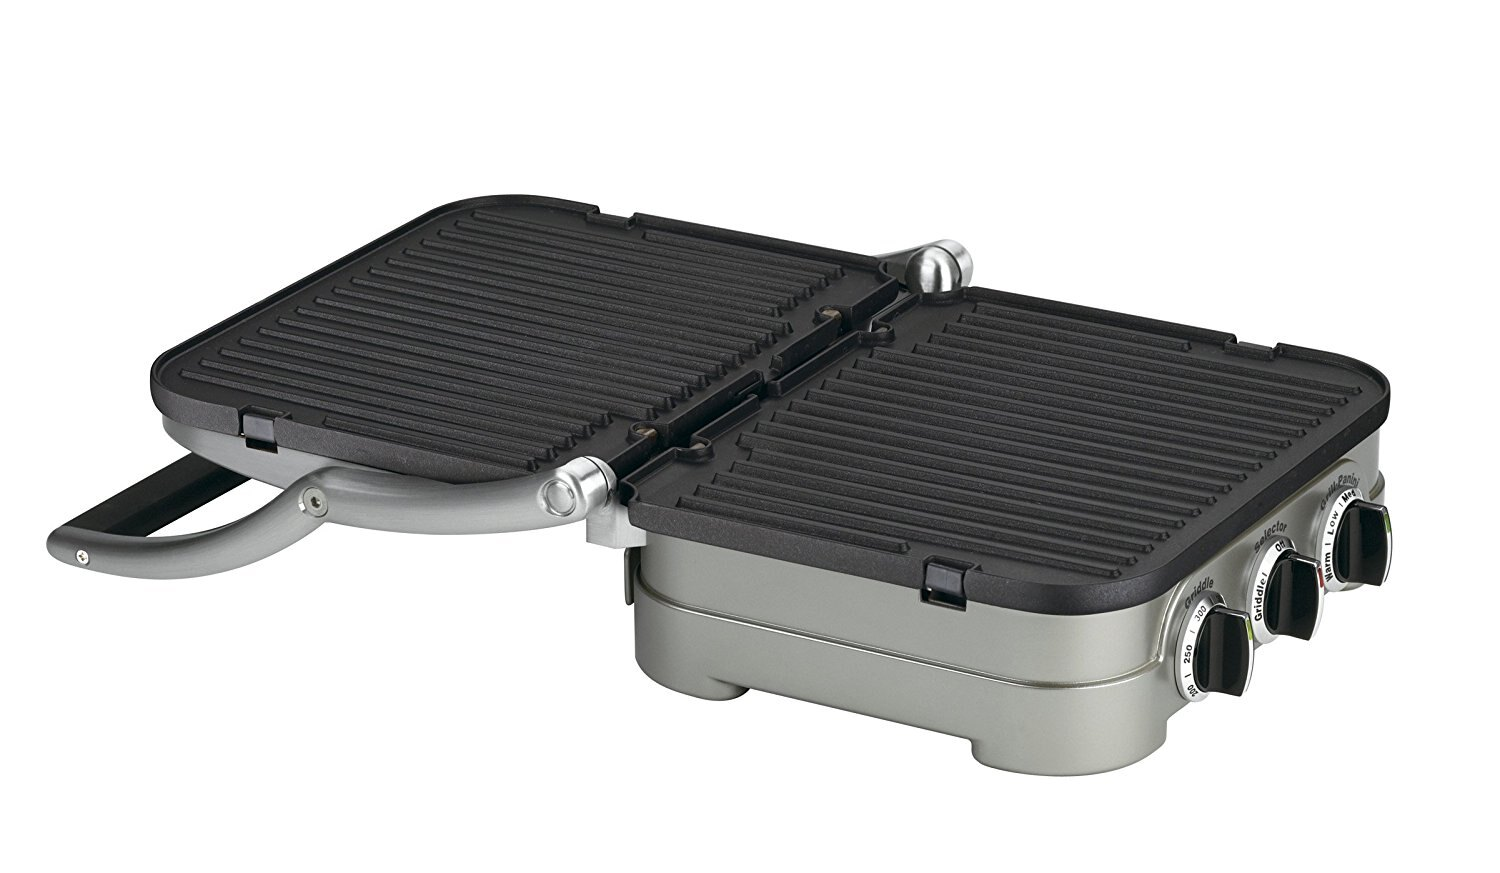 Cuisinart GR-4N 5-in-1 Griddler W/ Waffle Plates (Certified Refurbished) 3